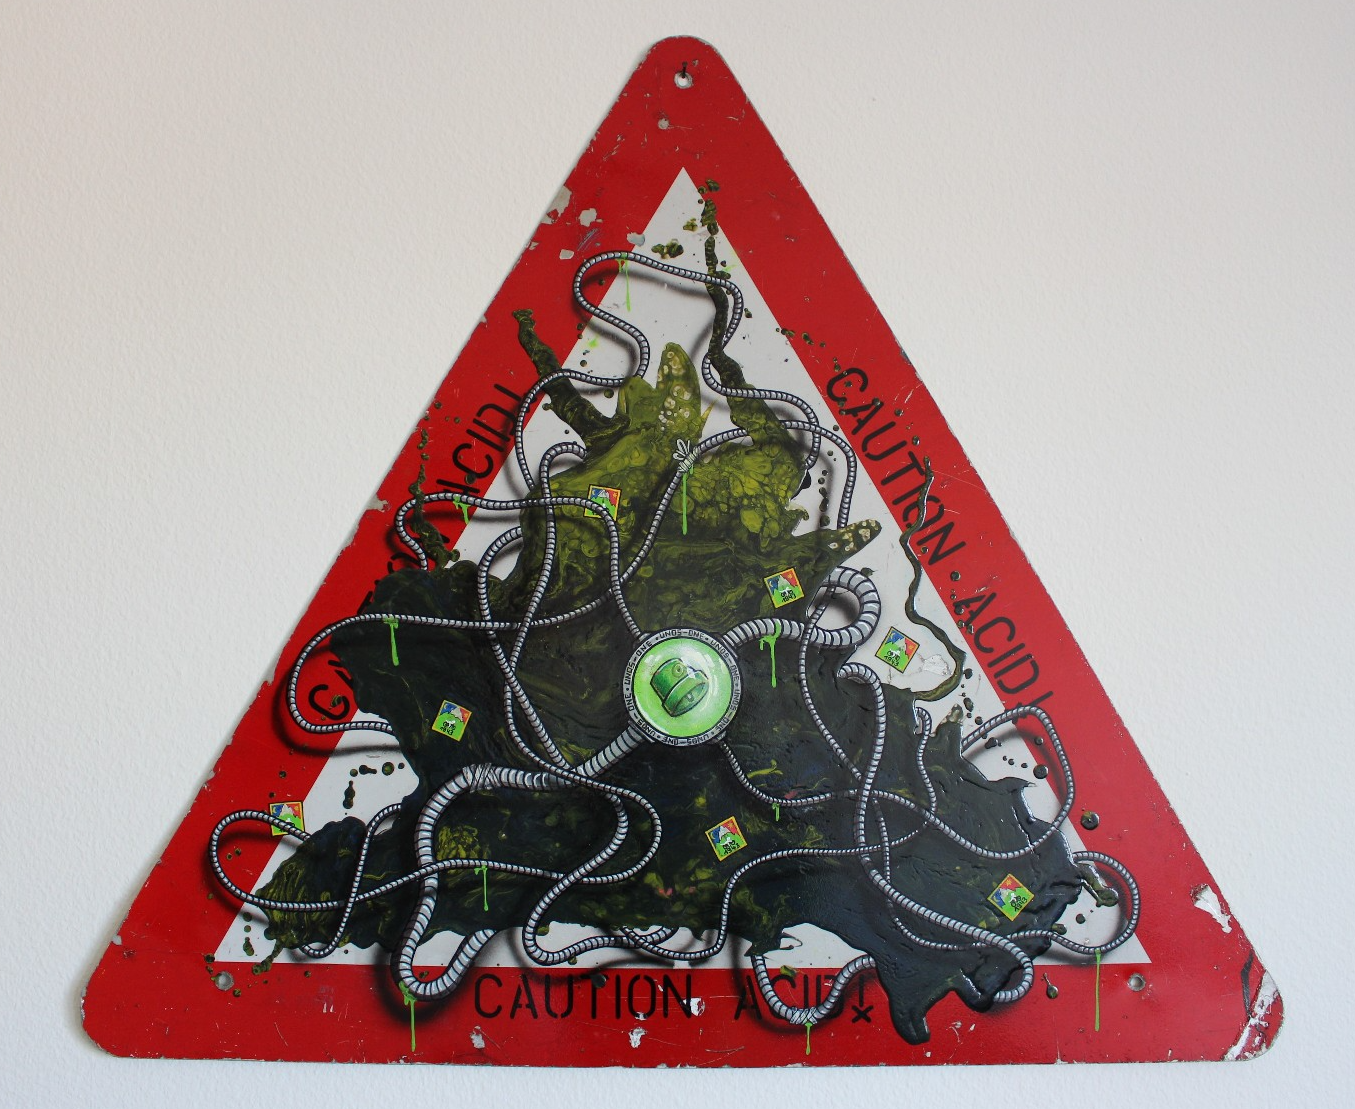 artigall: new artworks CAUTION ACID UNOS